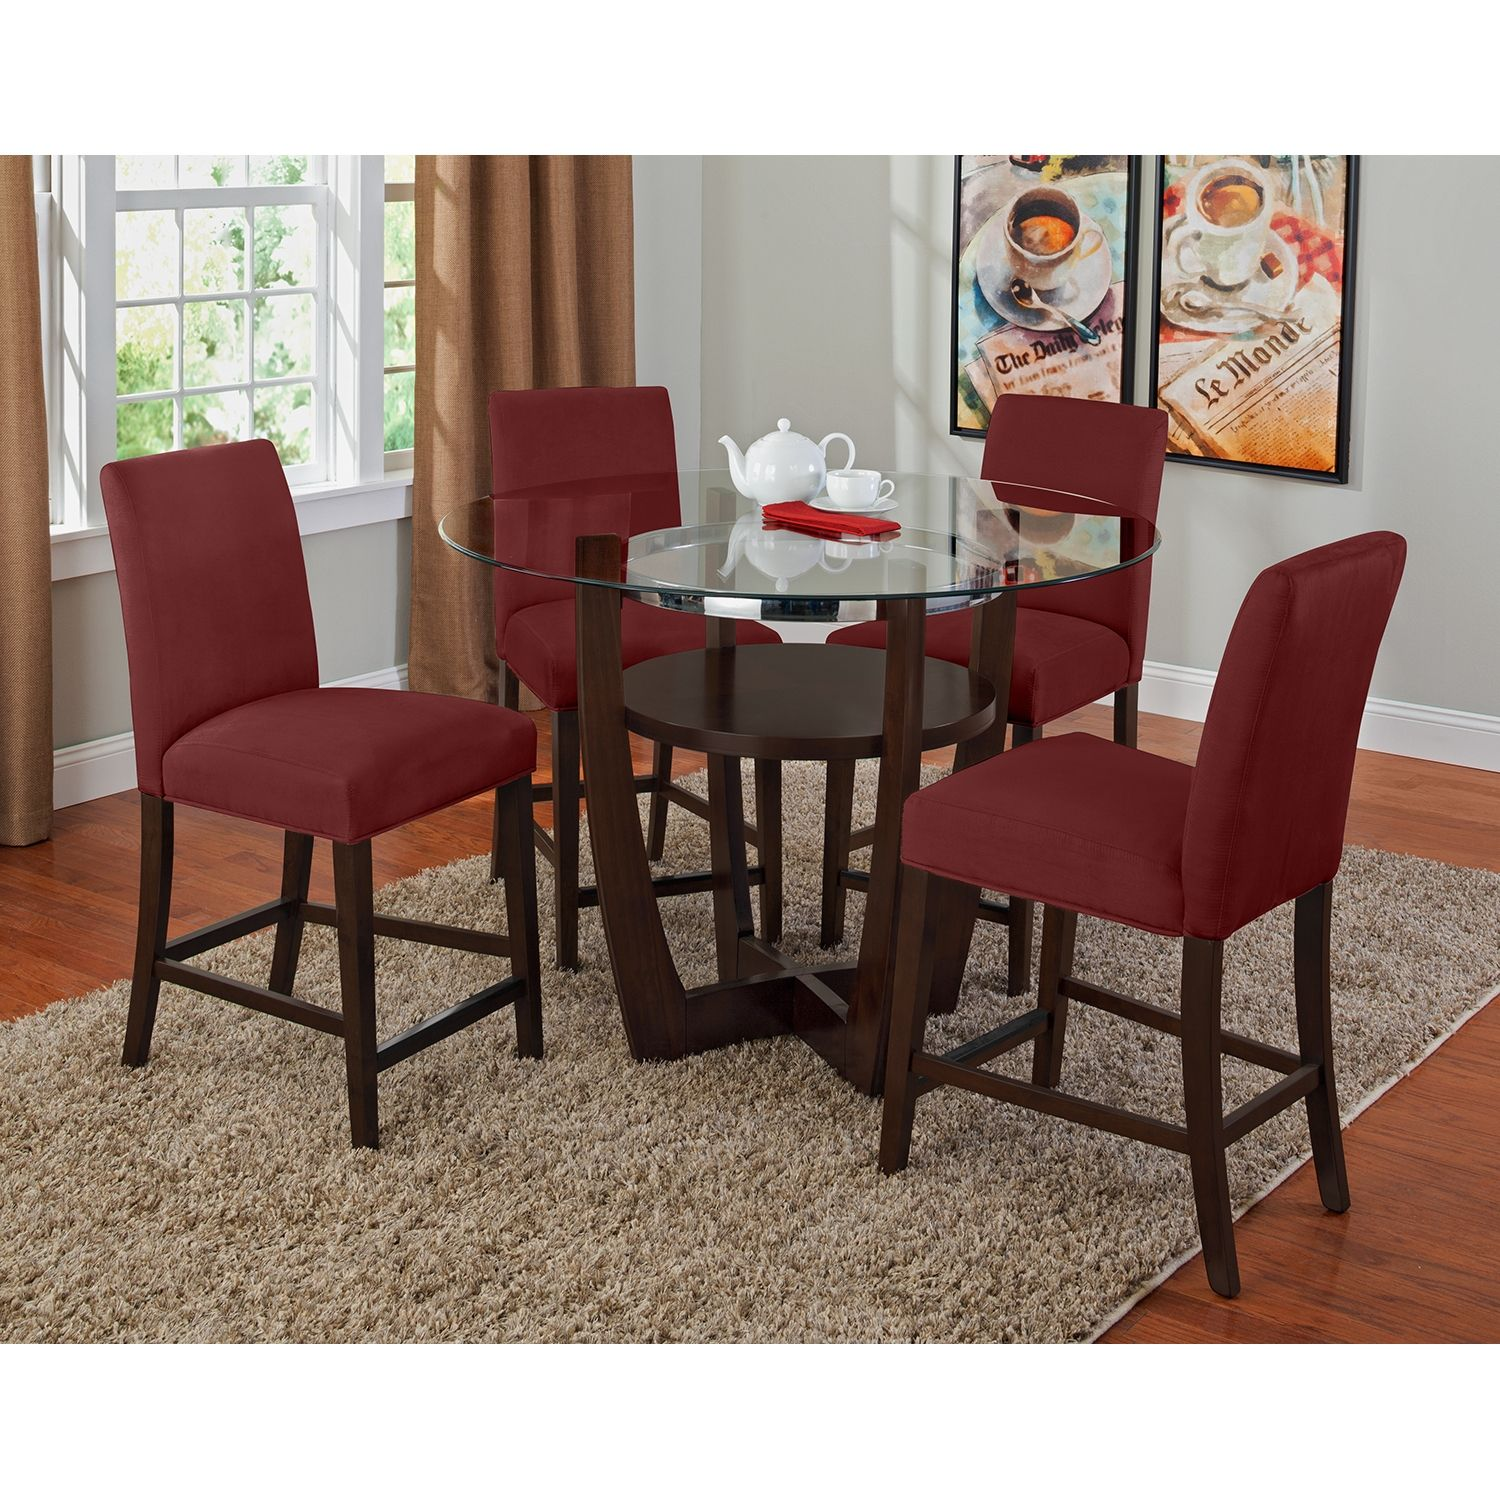 Dining Room Furniture  Alcove Red Ii 5 Pcdinette  Breakfast Mesmerizing Counter Height Dining Room Decorating Inspiration